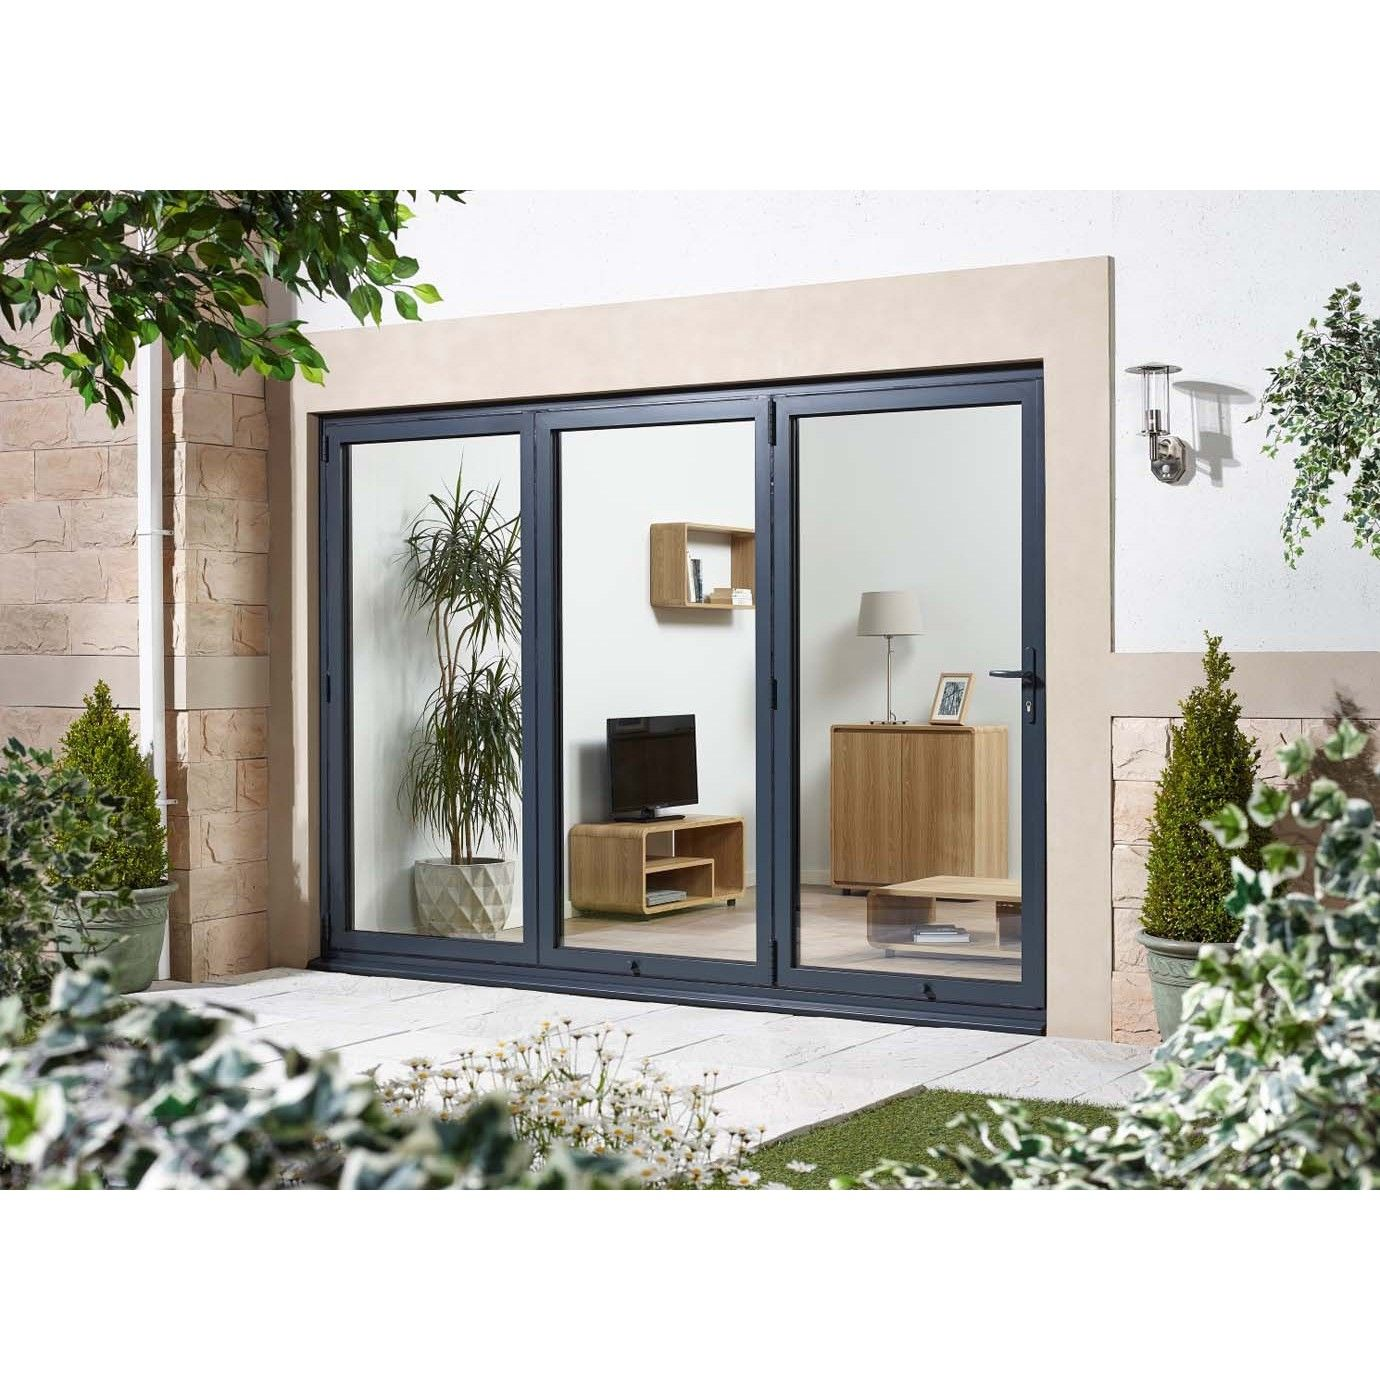 AluVu External Anthracite Grey 8ft Folding Sliding Patio Door Left Opening